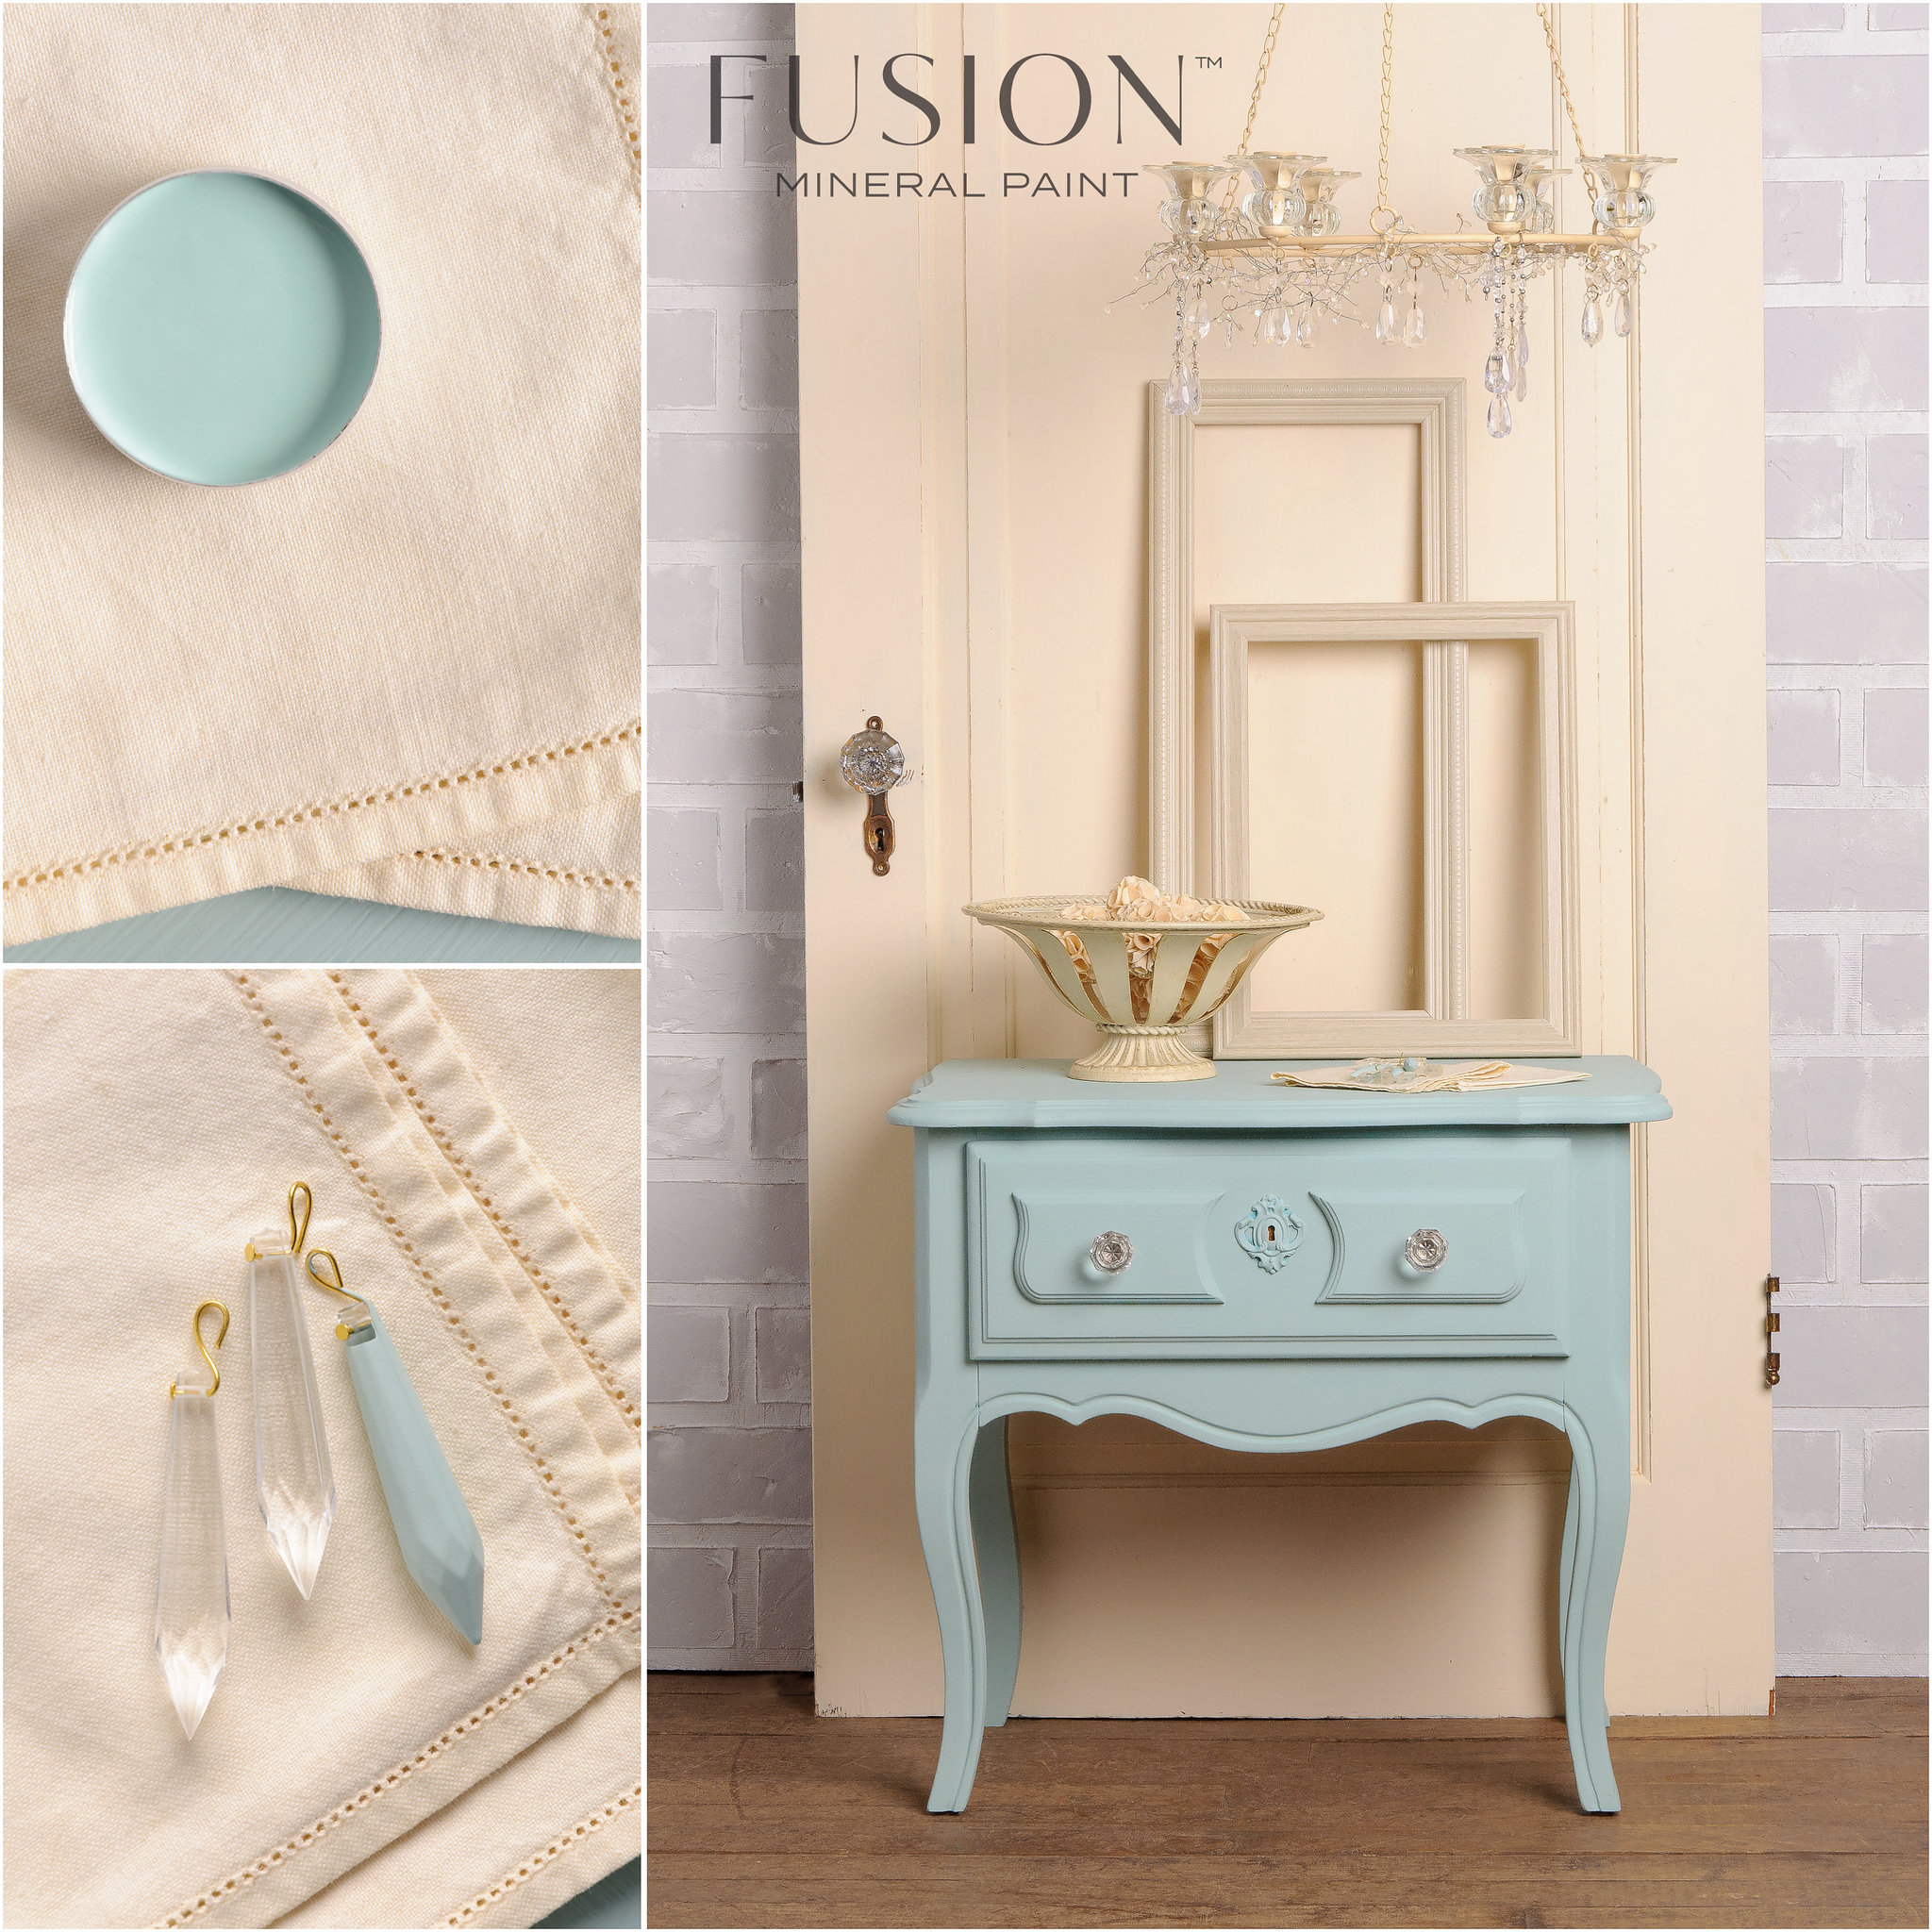 End Table Painted in Inglenook Fusion Mineral Paint